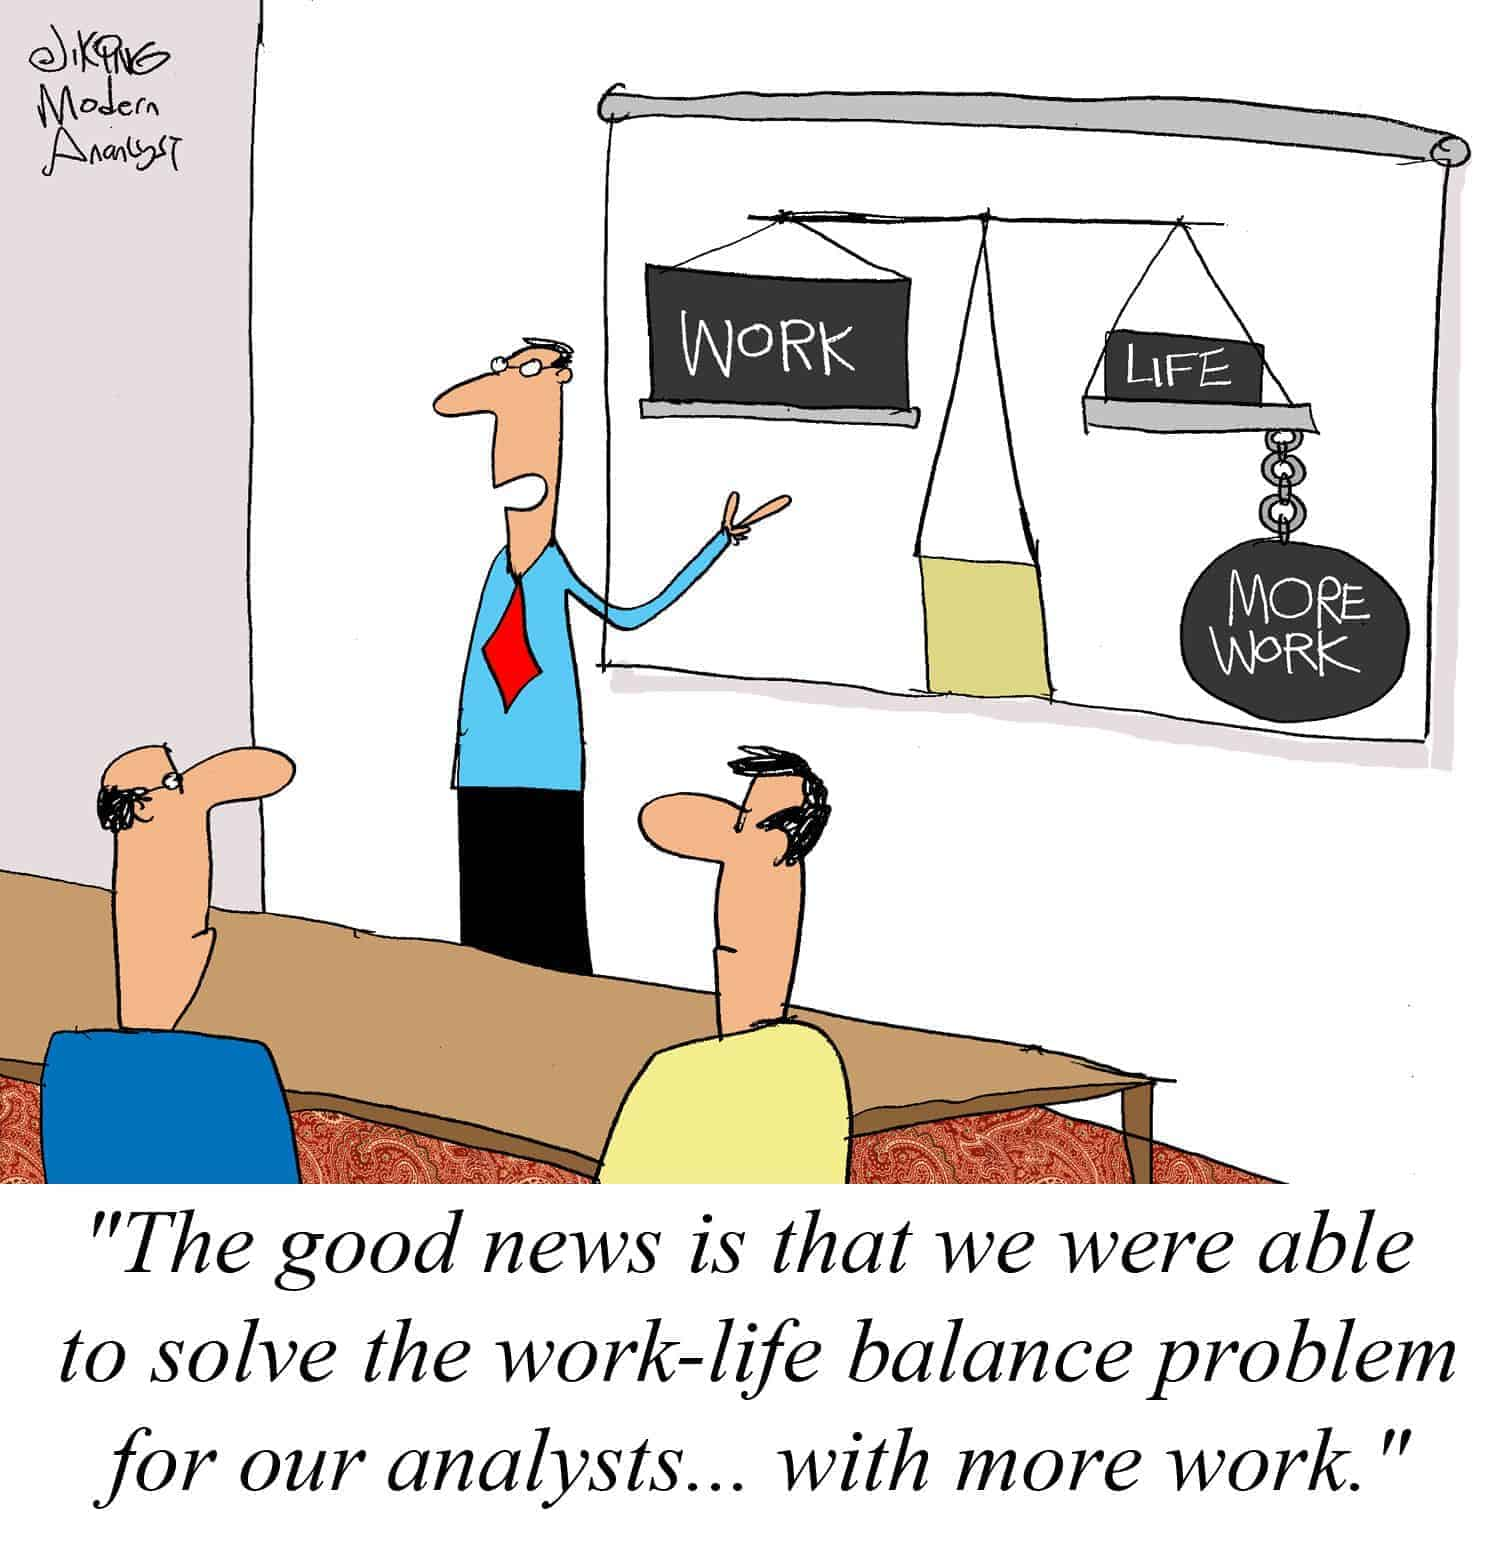 work-life balance can be achieved